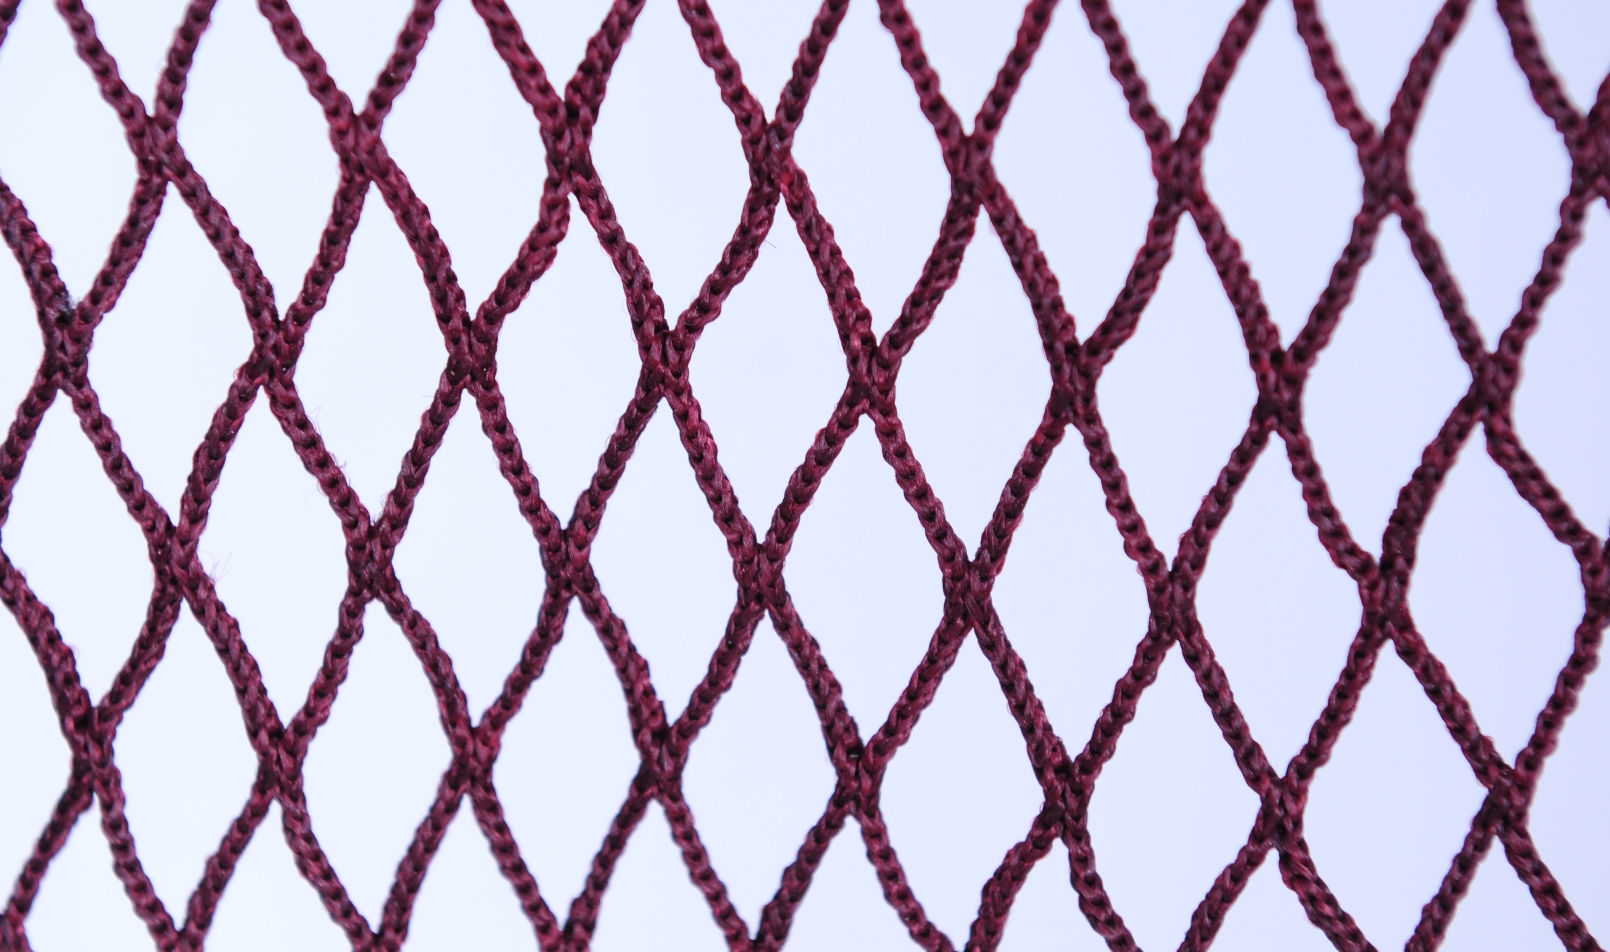 Nylon Multifilament Net